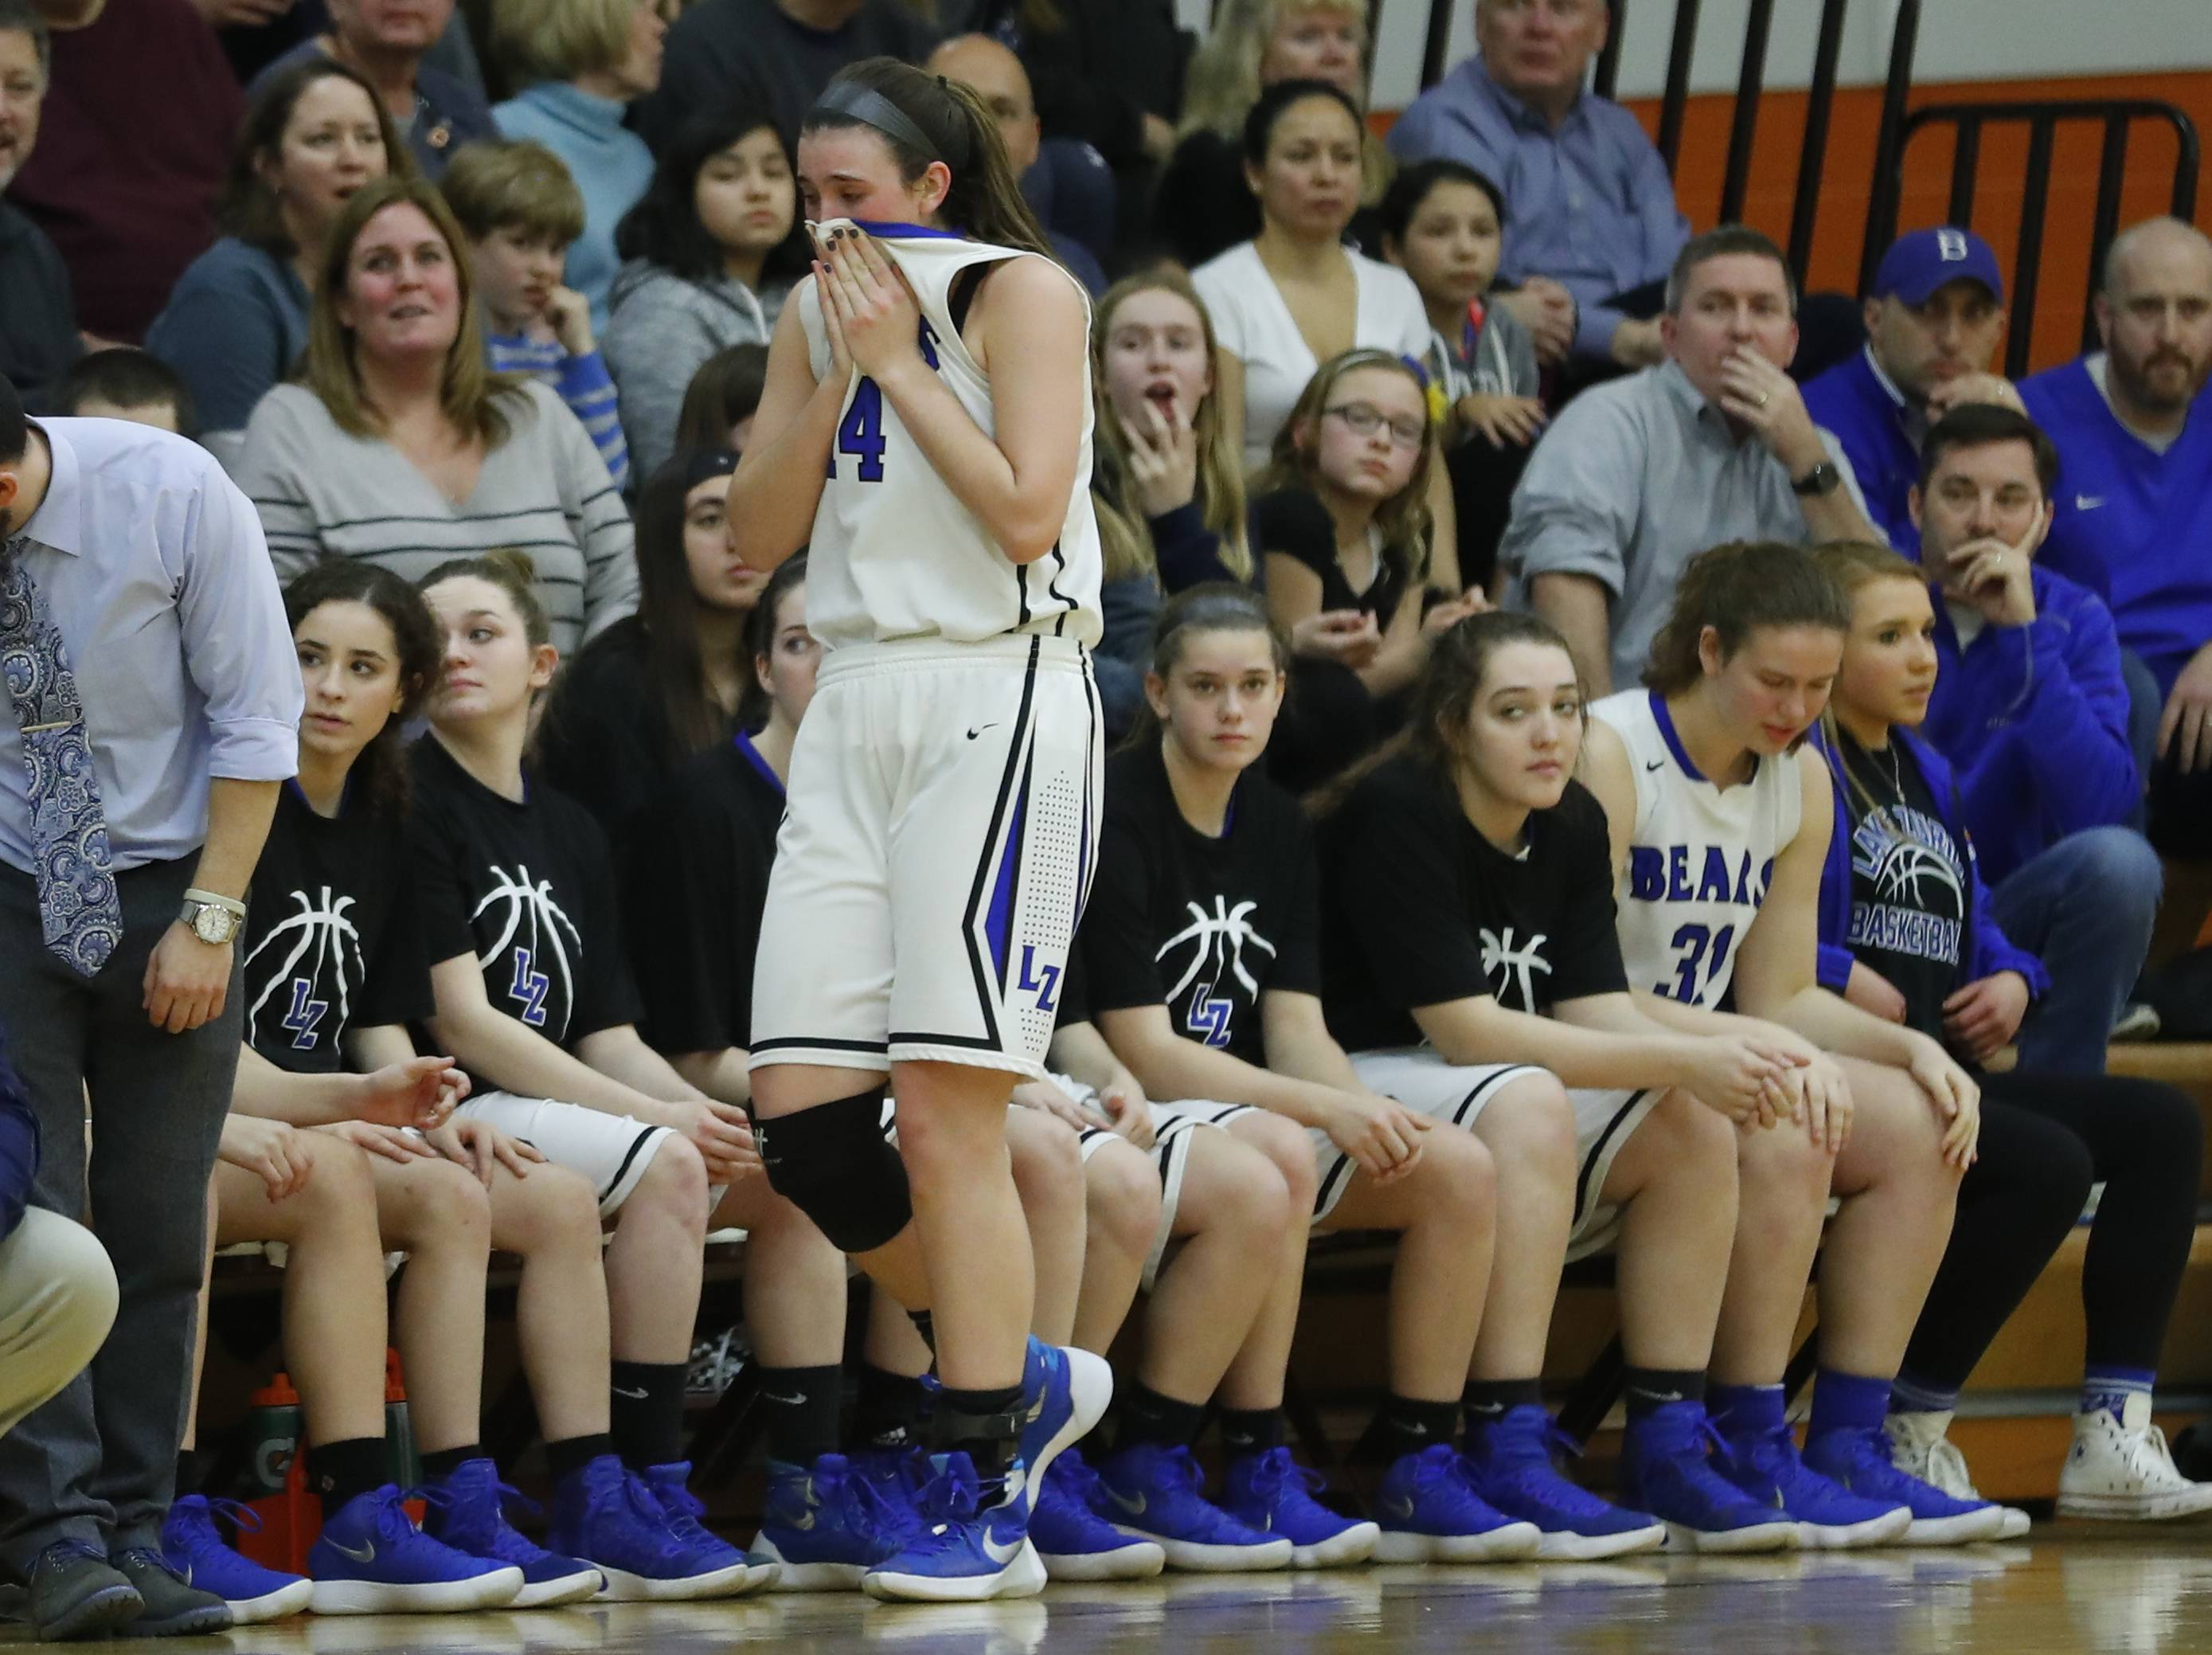 Lake Zurich's McKenna Zobel gets emotional after fouling out during the Class 4A supersectional at Hersey High School in Arlington Heights on Monday.